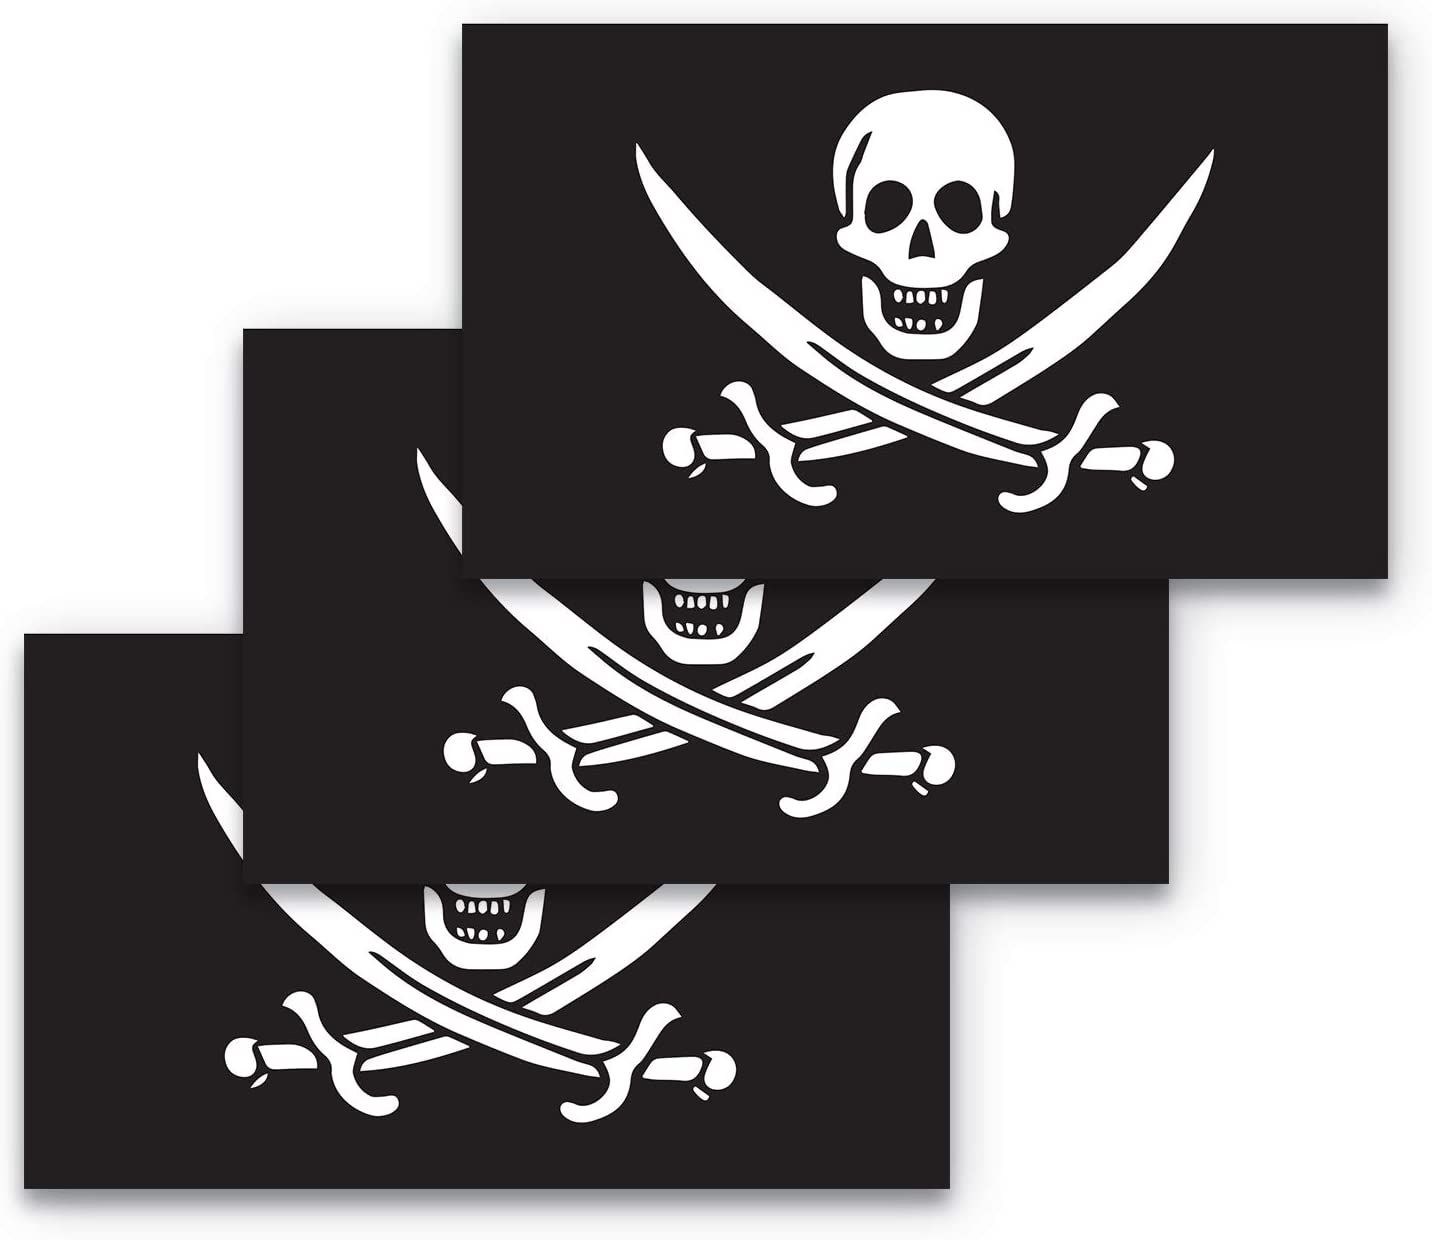 3x5 Pirate Flag Sticker Pirate Sticker 3-Pack Made with Durable, Waterproof Materials, Jolly Roger Flag Bumper Sticker Pirate Bumper Sticker Skull and Crossbones Sticker Jolly Roger Sticker